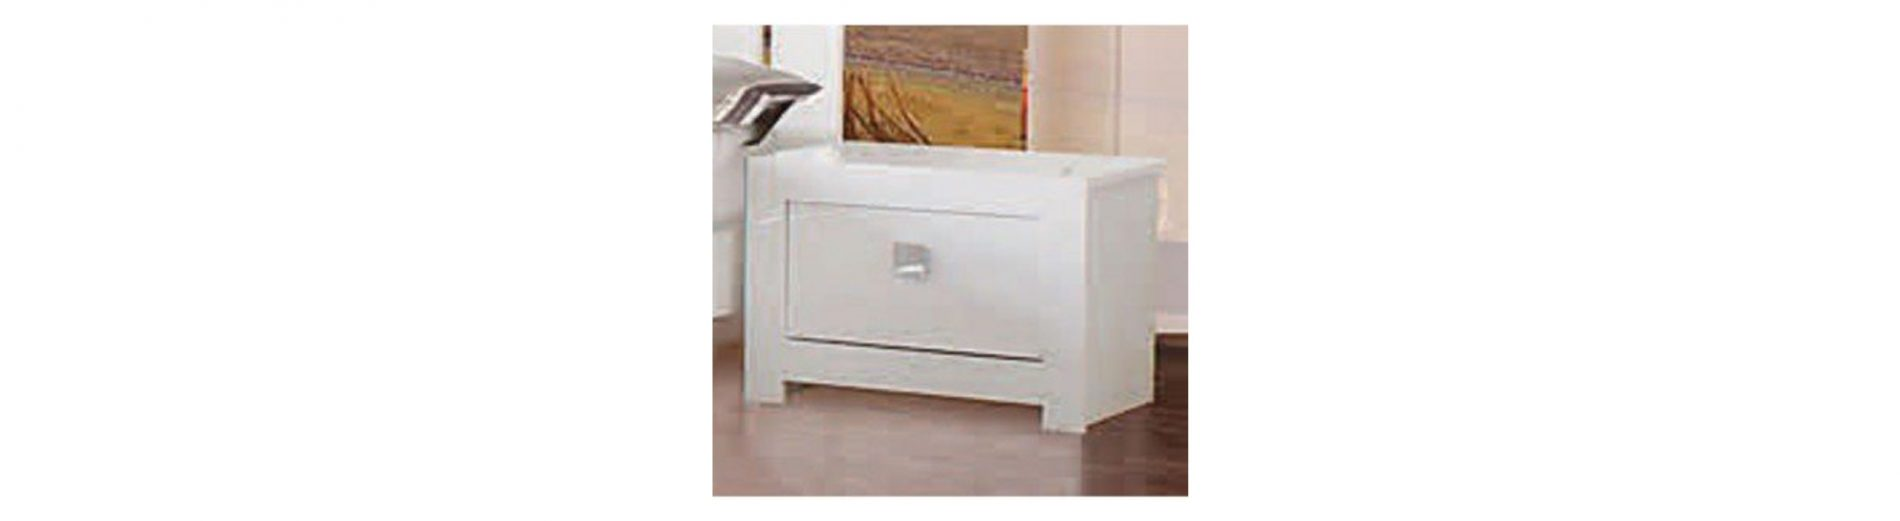 Types of bedroom cabinets